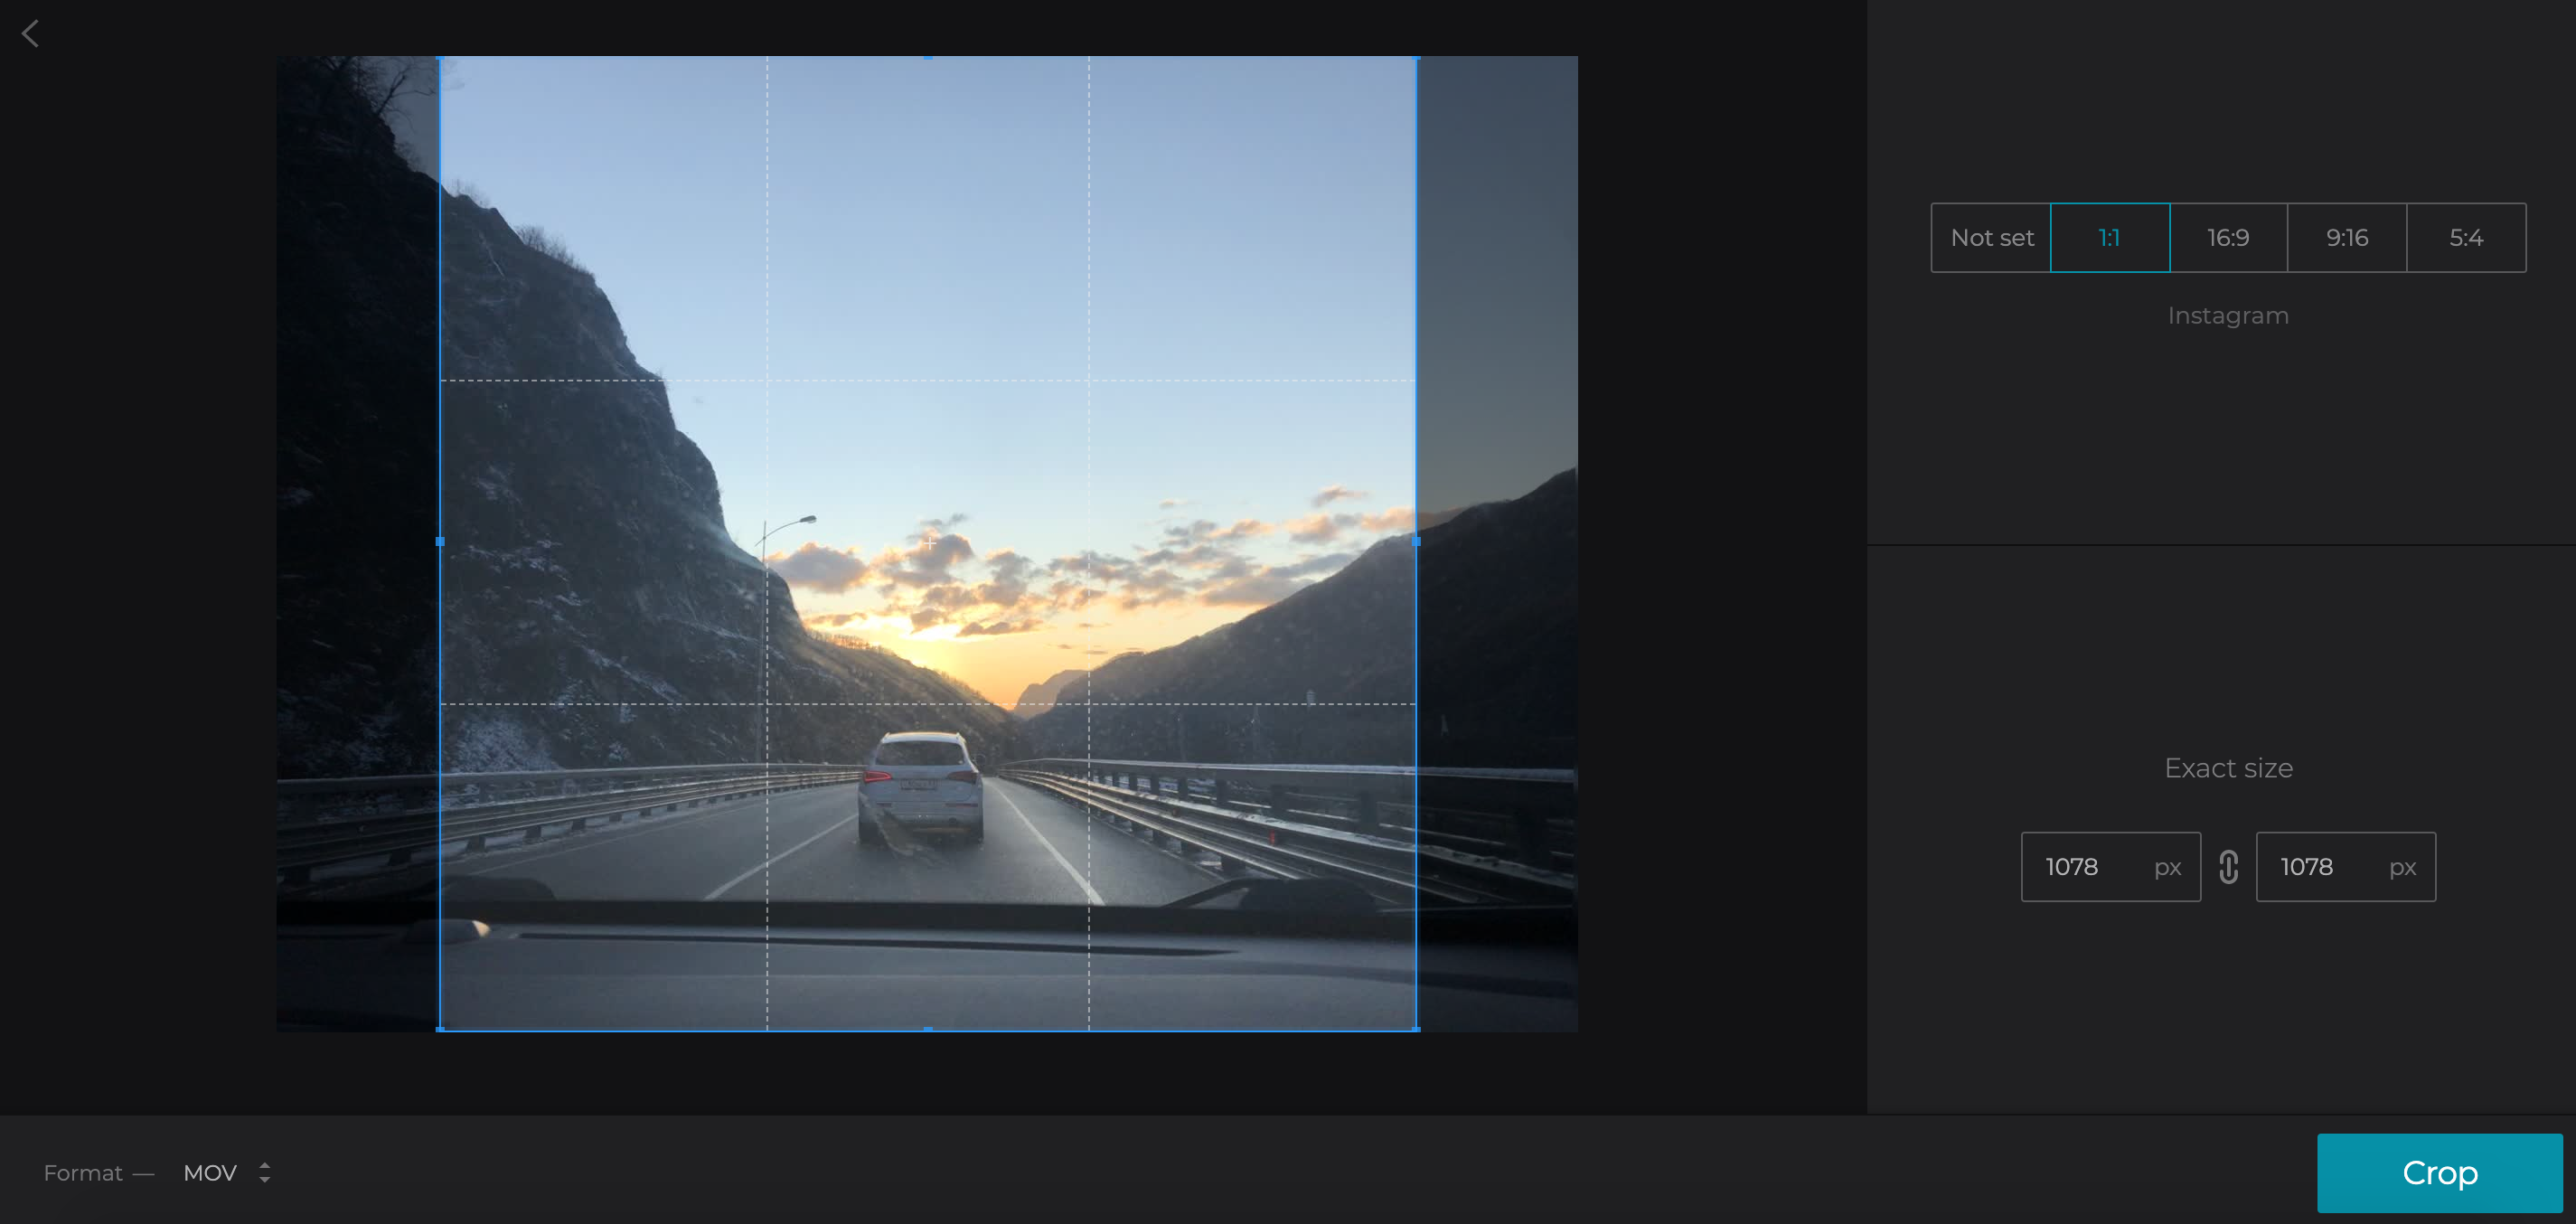 Crop video for Instagram by choosing aspect ratio